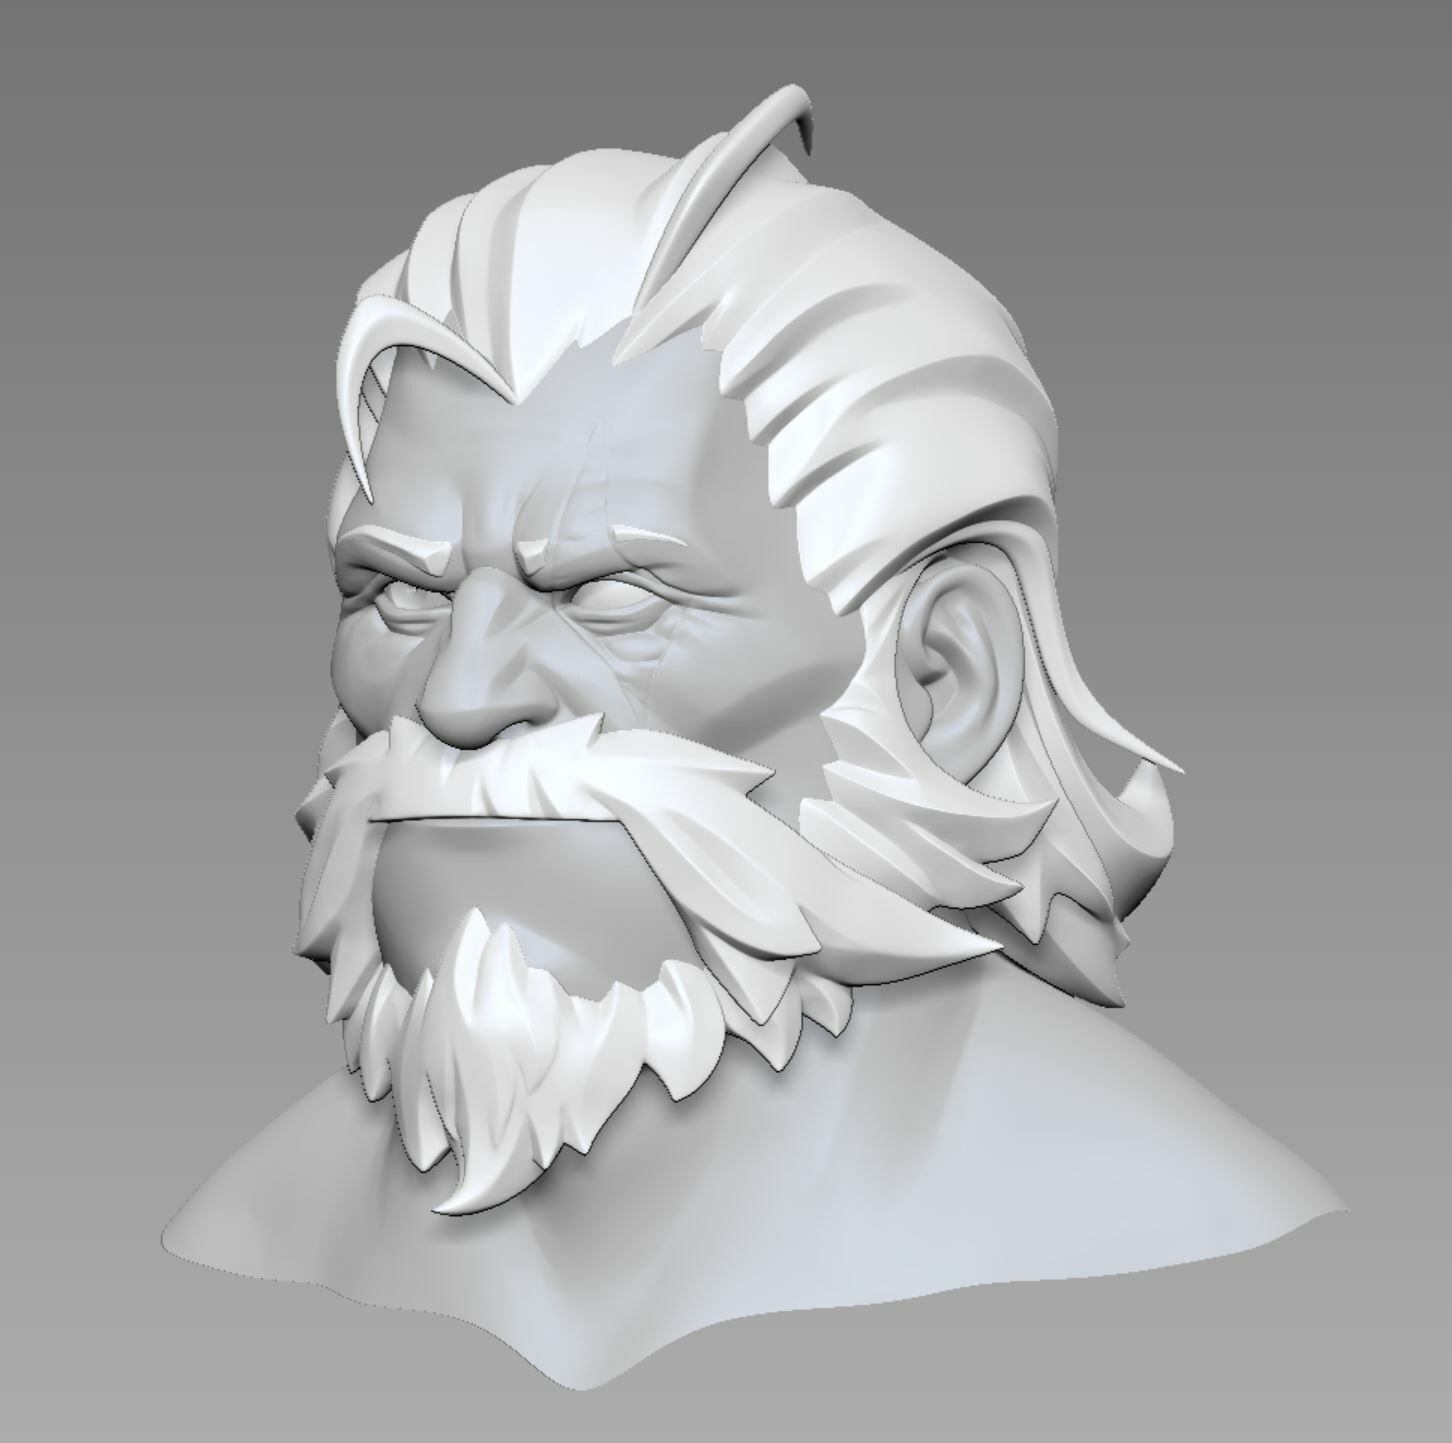 Nearly as much time went into sculpting the hair as in modeling the whole  armor